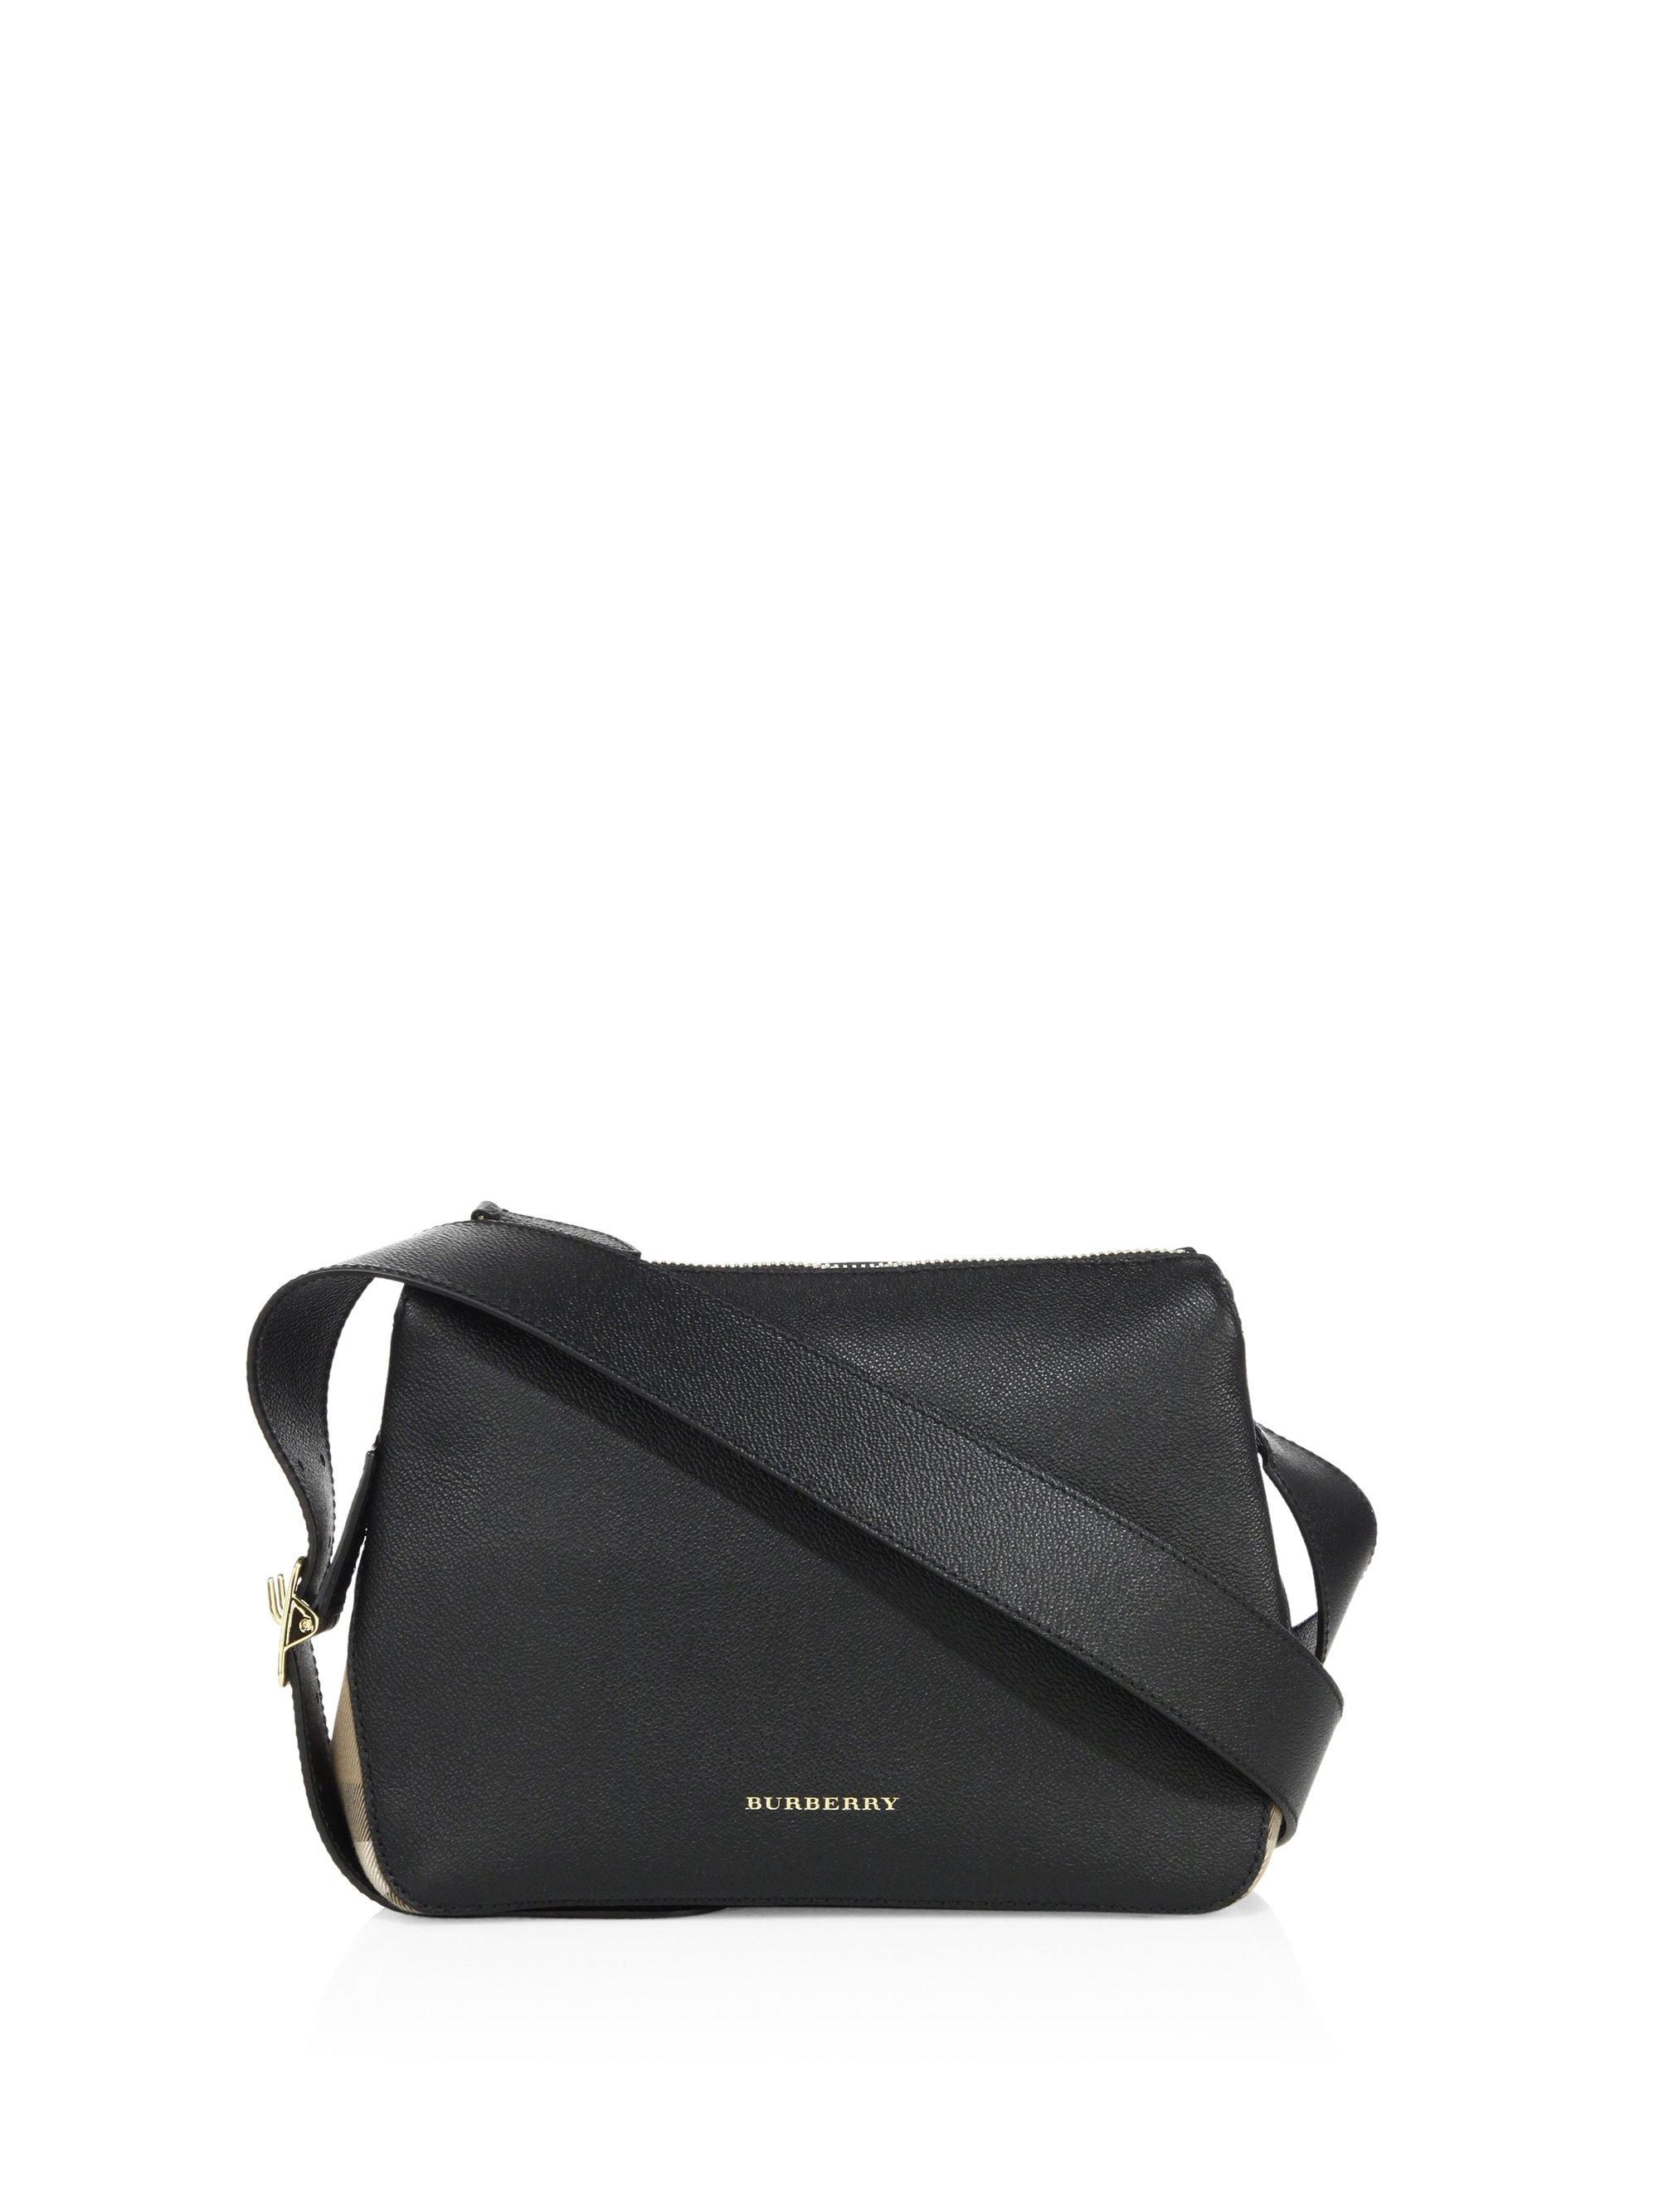 277c16324483 Burberry Helmsley Small Leather   House Check Crossbody Bag in Black ...